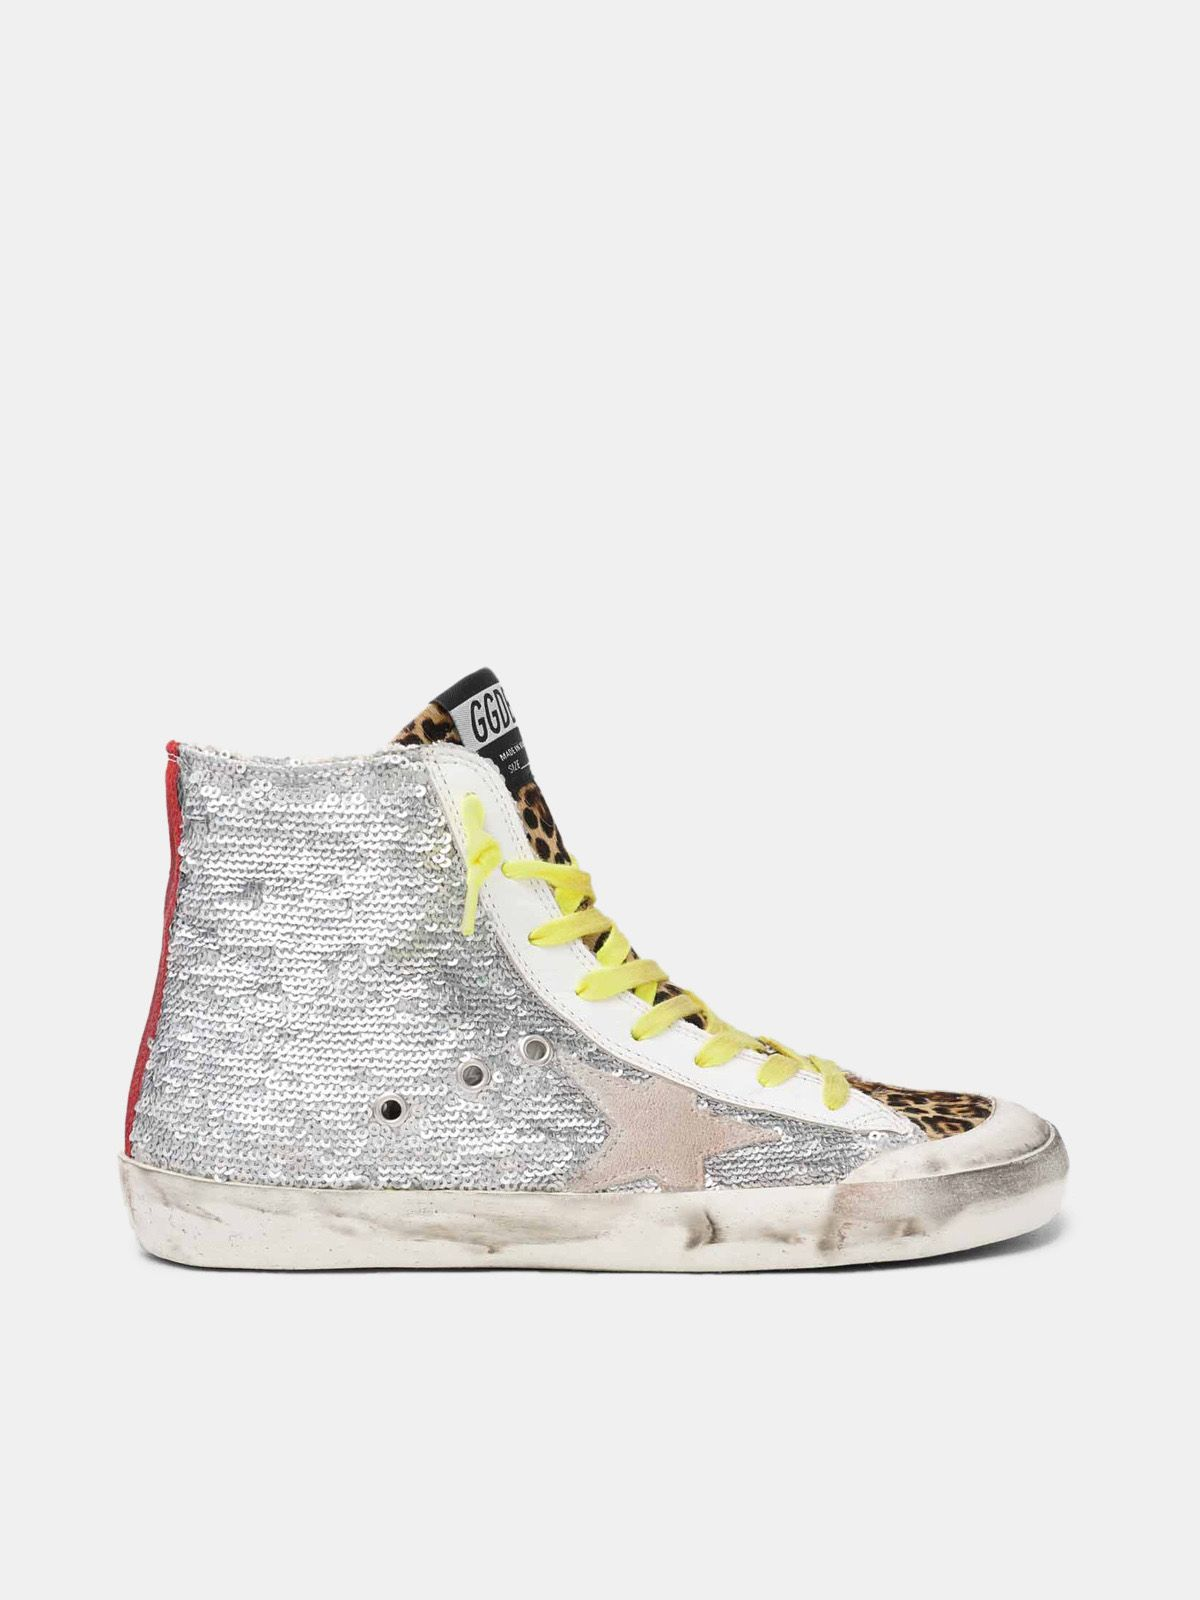 Francy sneakers with silver sequins and leopard-print pony skin